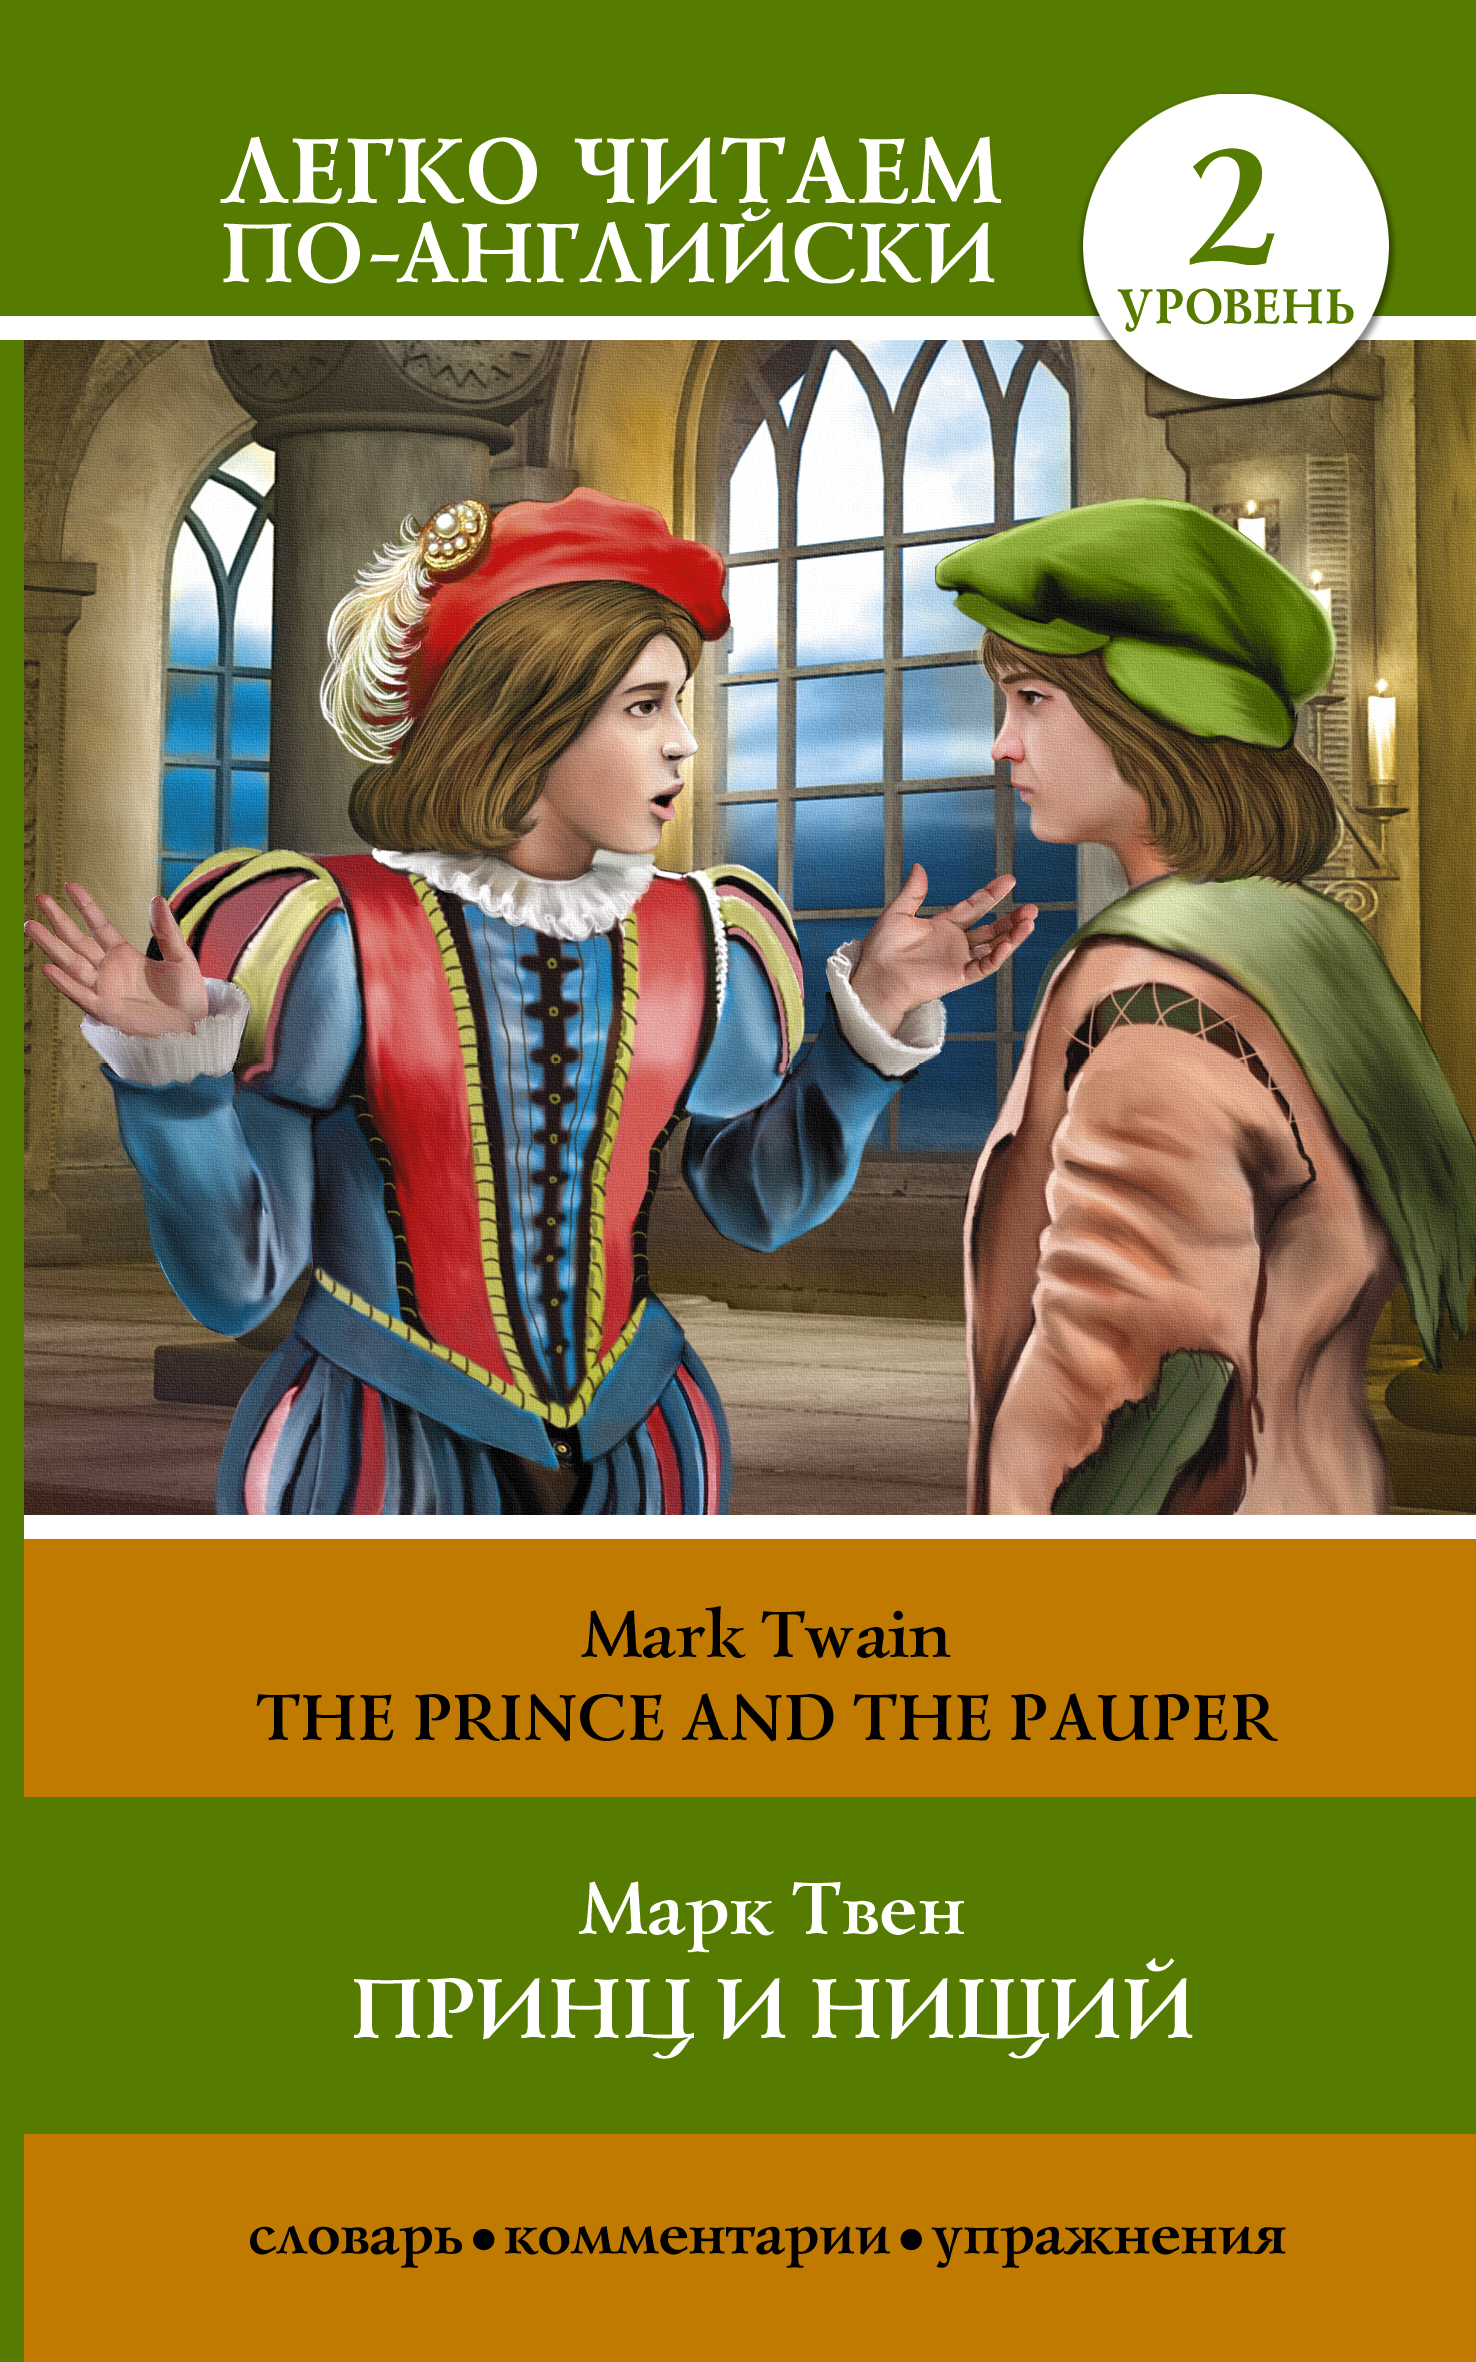 Марк Твен Принц и нищий = The Prince and the Pauper марк твен the prince and the pauper